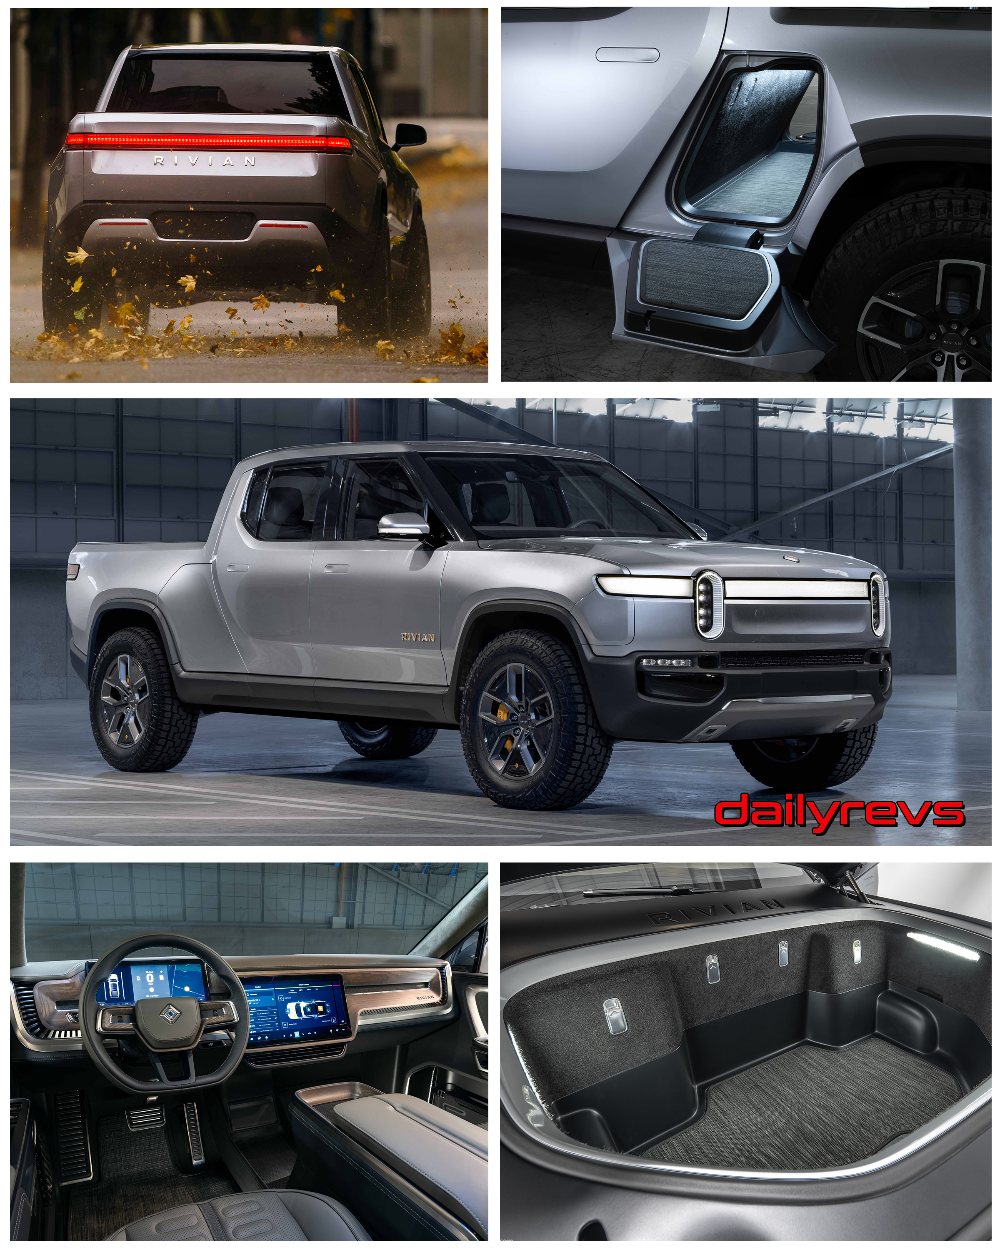 2021 Rivian R1T HD Pictures, Videos, Specs & Information